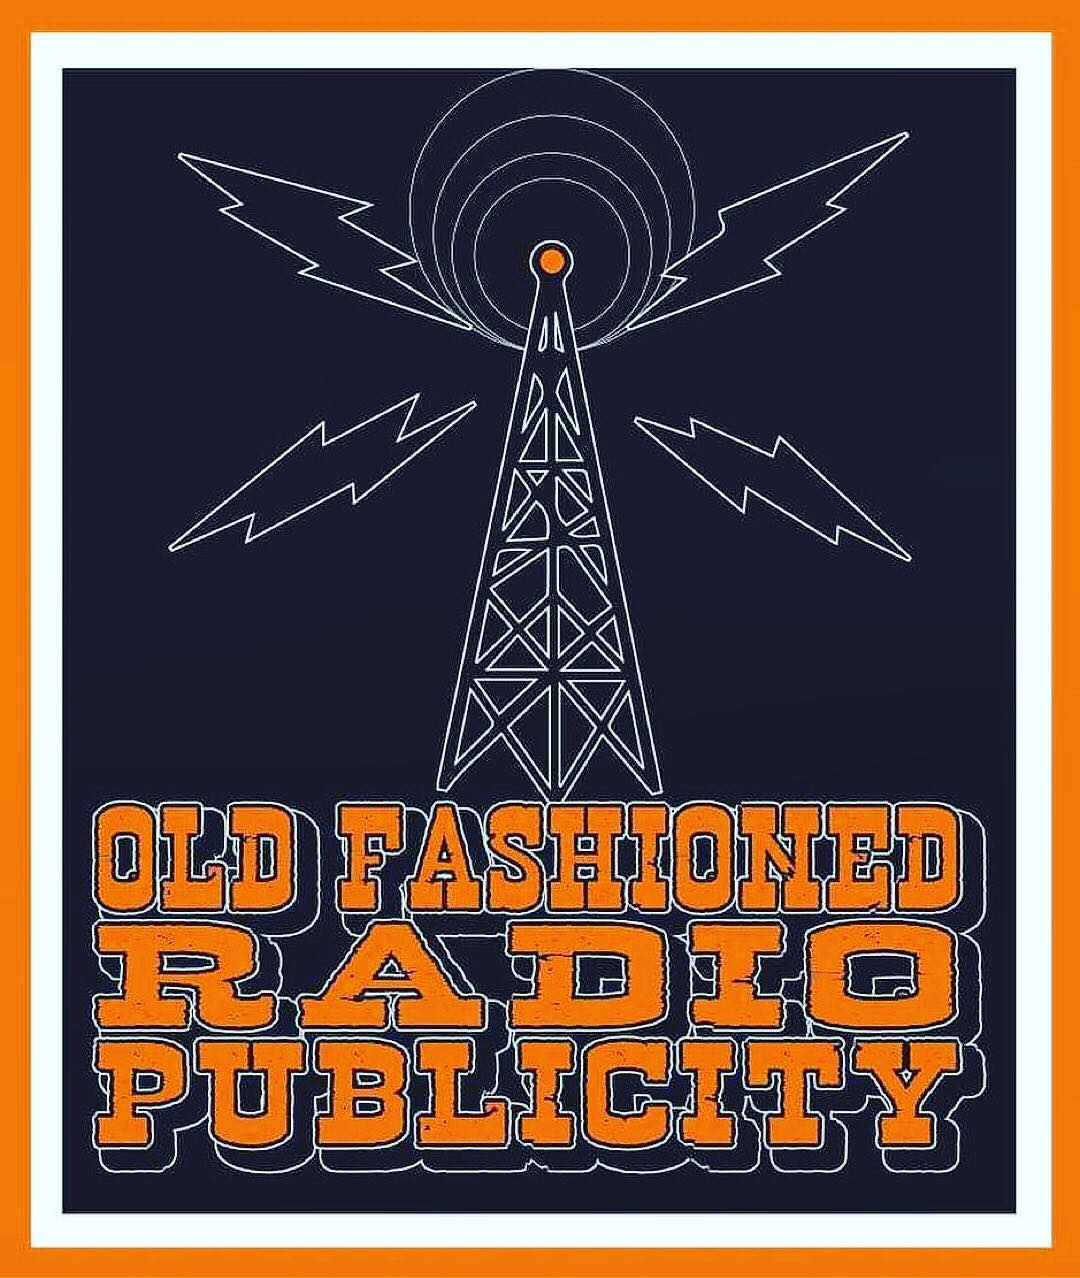 Old Fashioned Radio Publicity